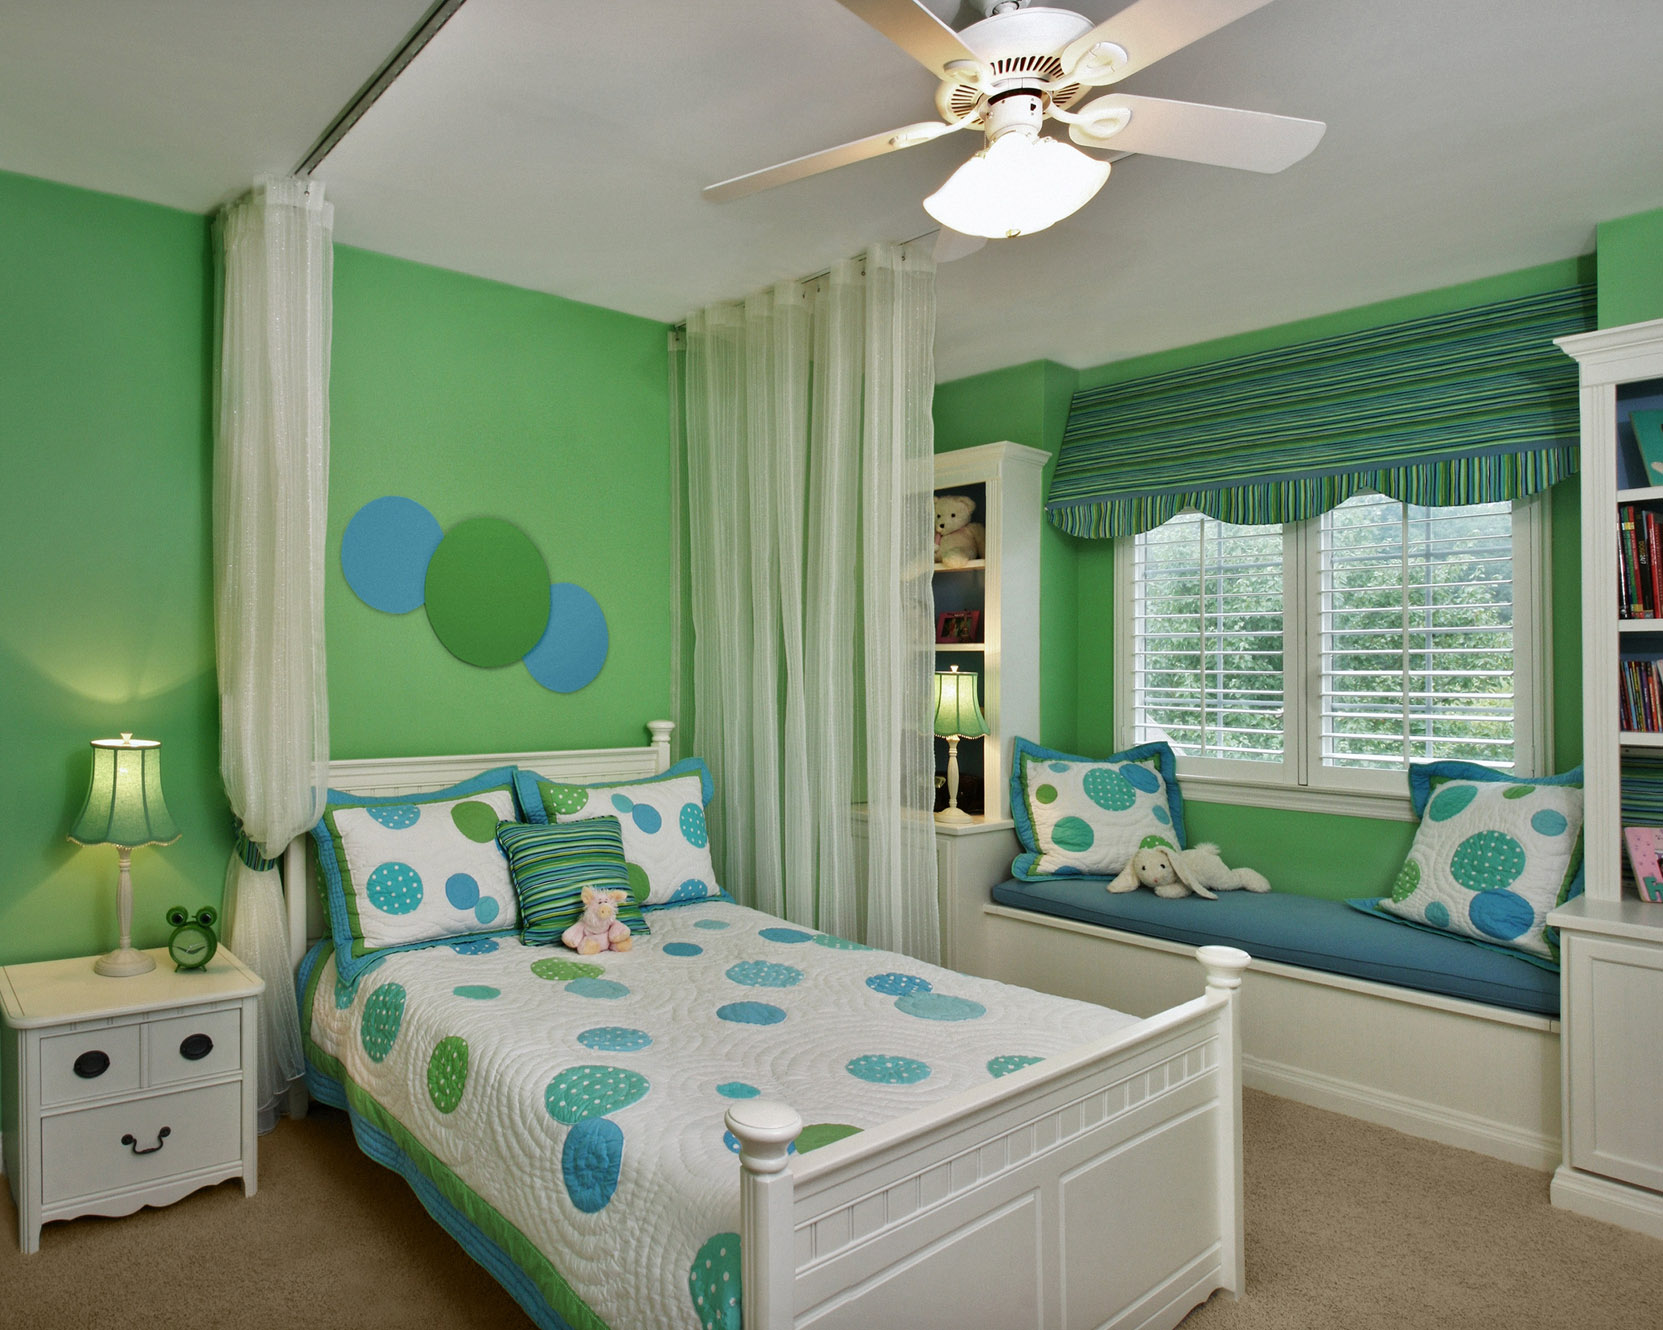 The abc 39 s of decorating k is for kid 39 s rooms decorating den interiors - Kids room decoration ...